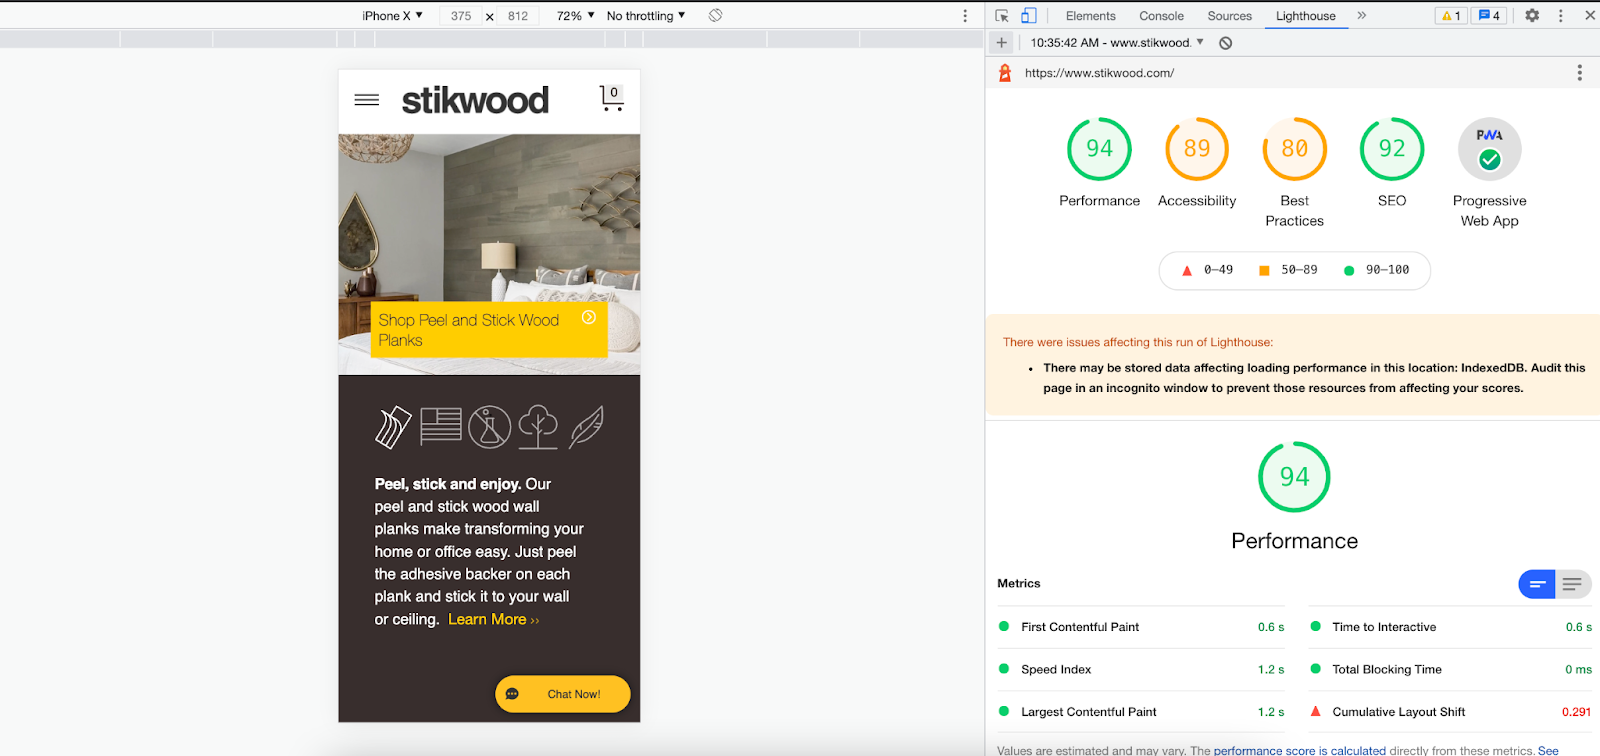 A Lighthouse audit of the Stikwood website